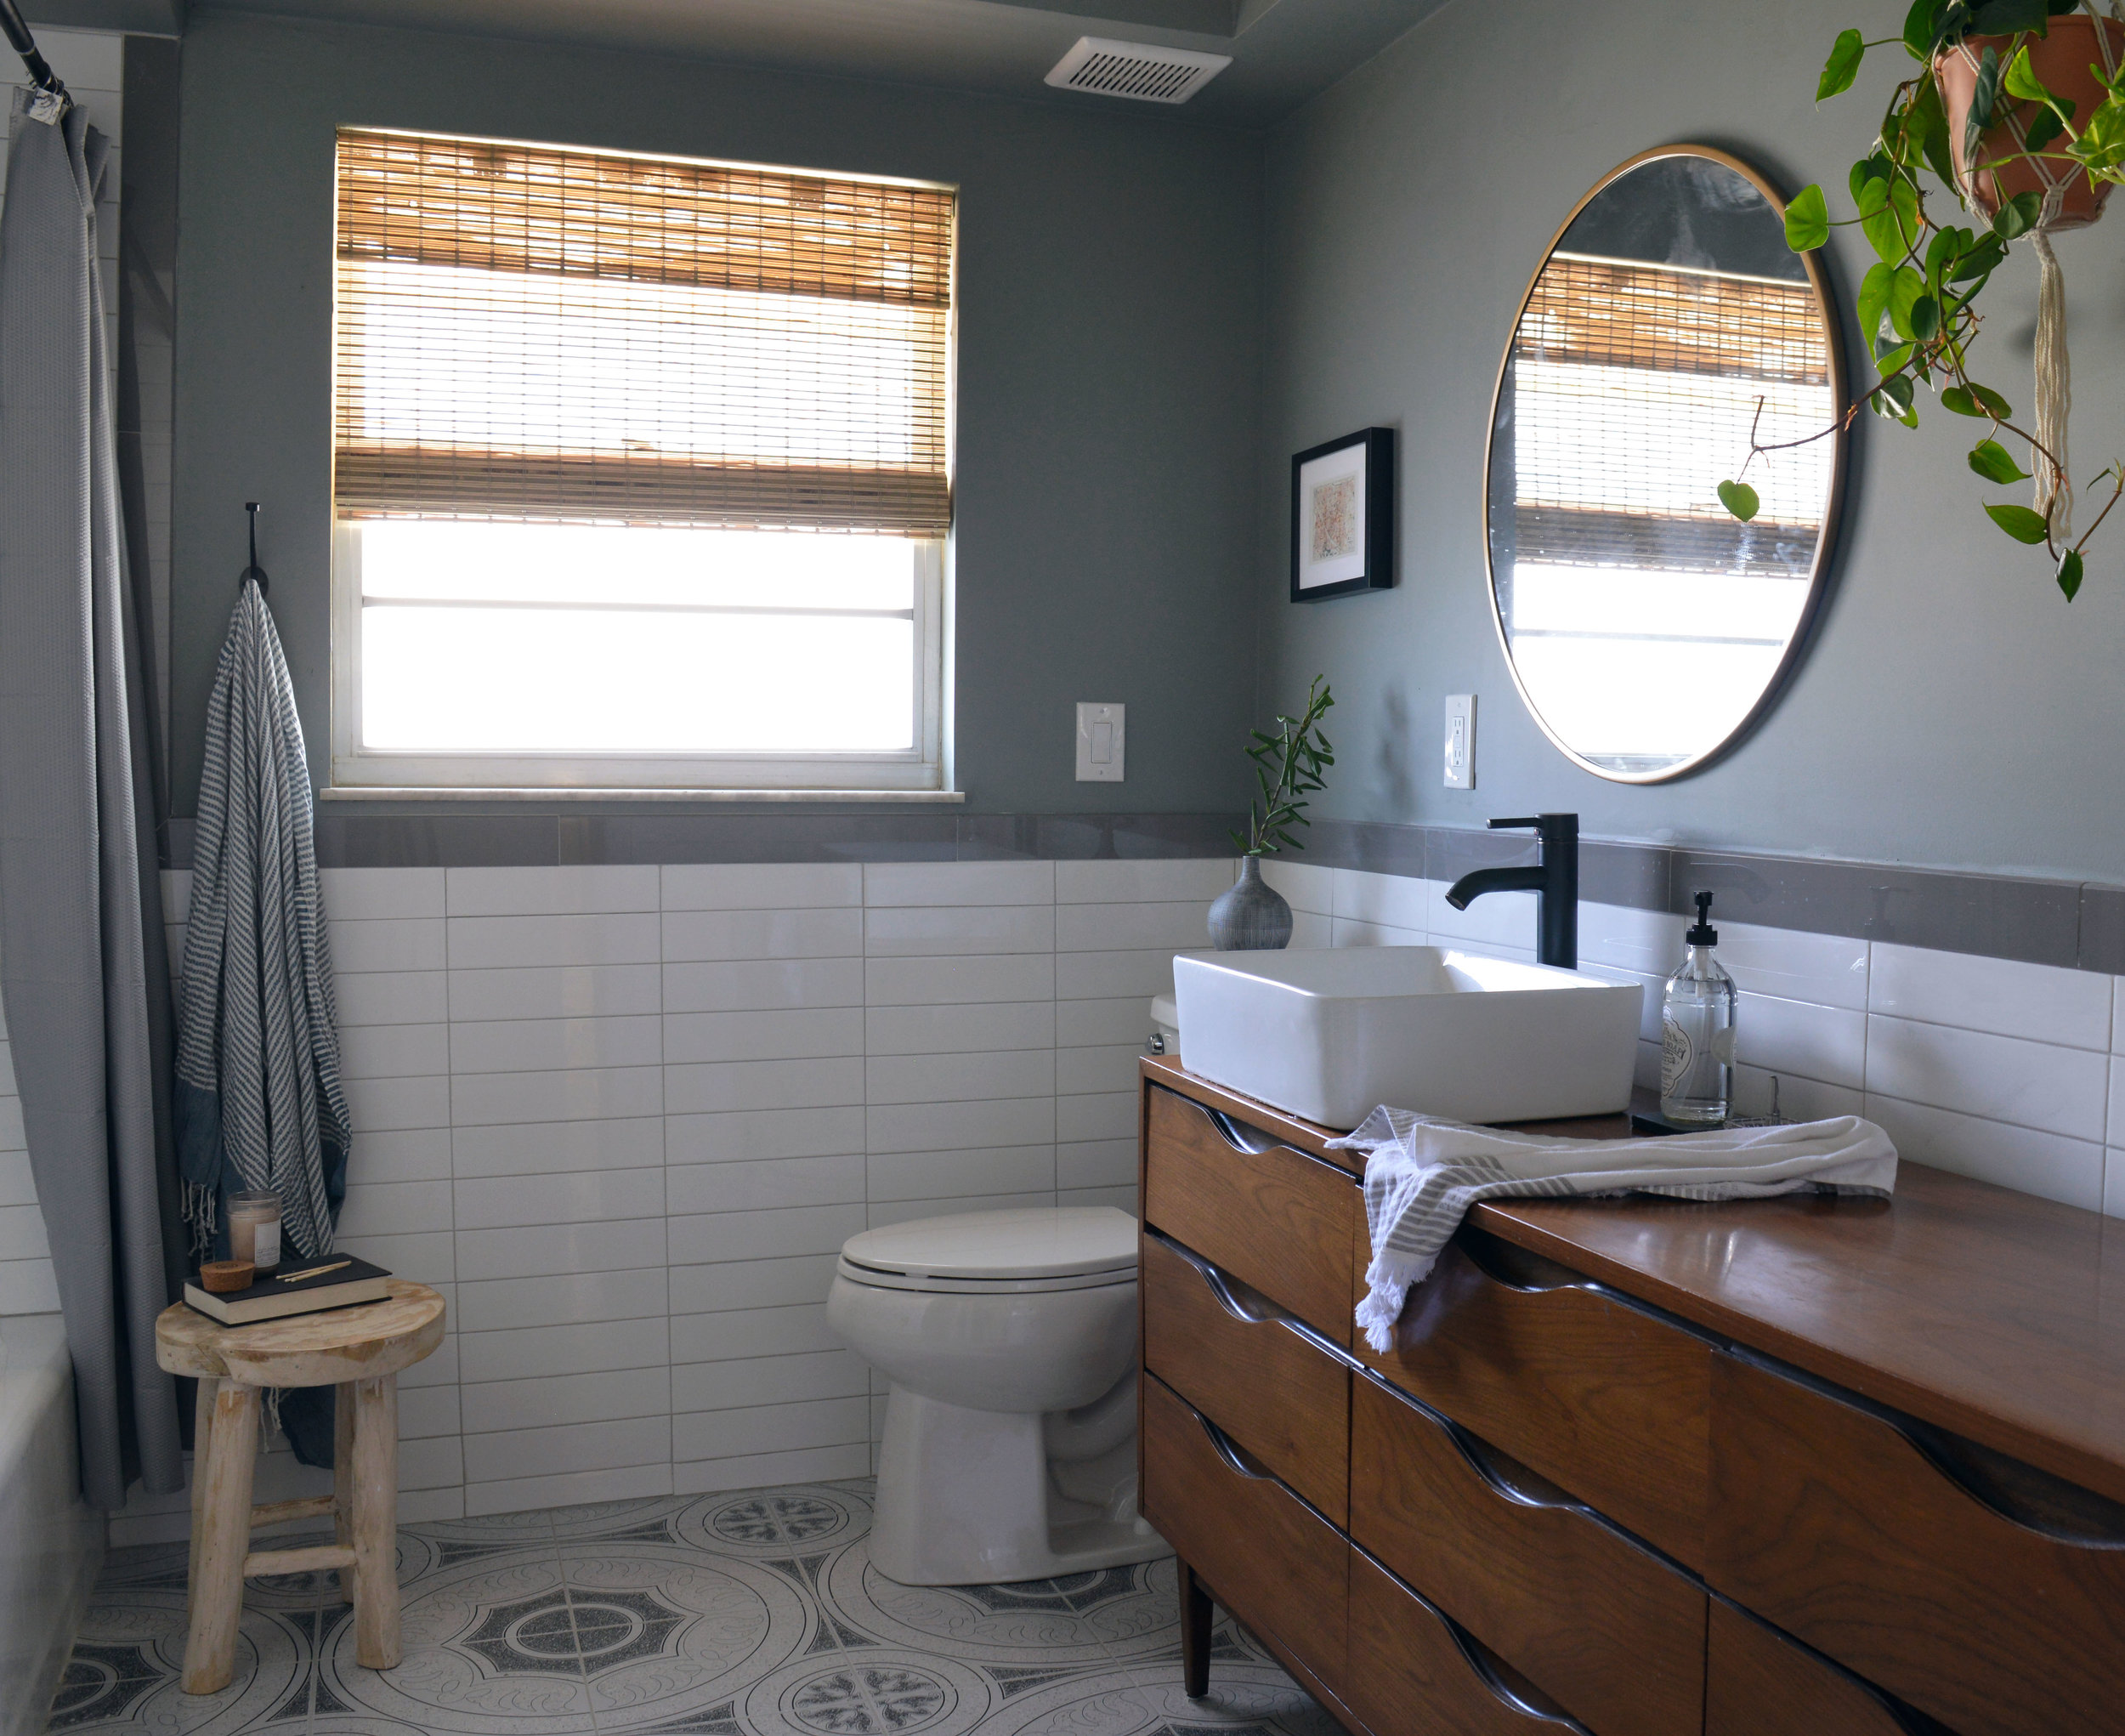 Bathroom Renovation with hanging planters